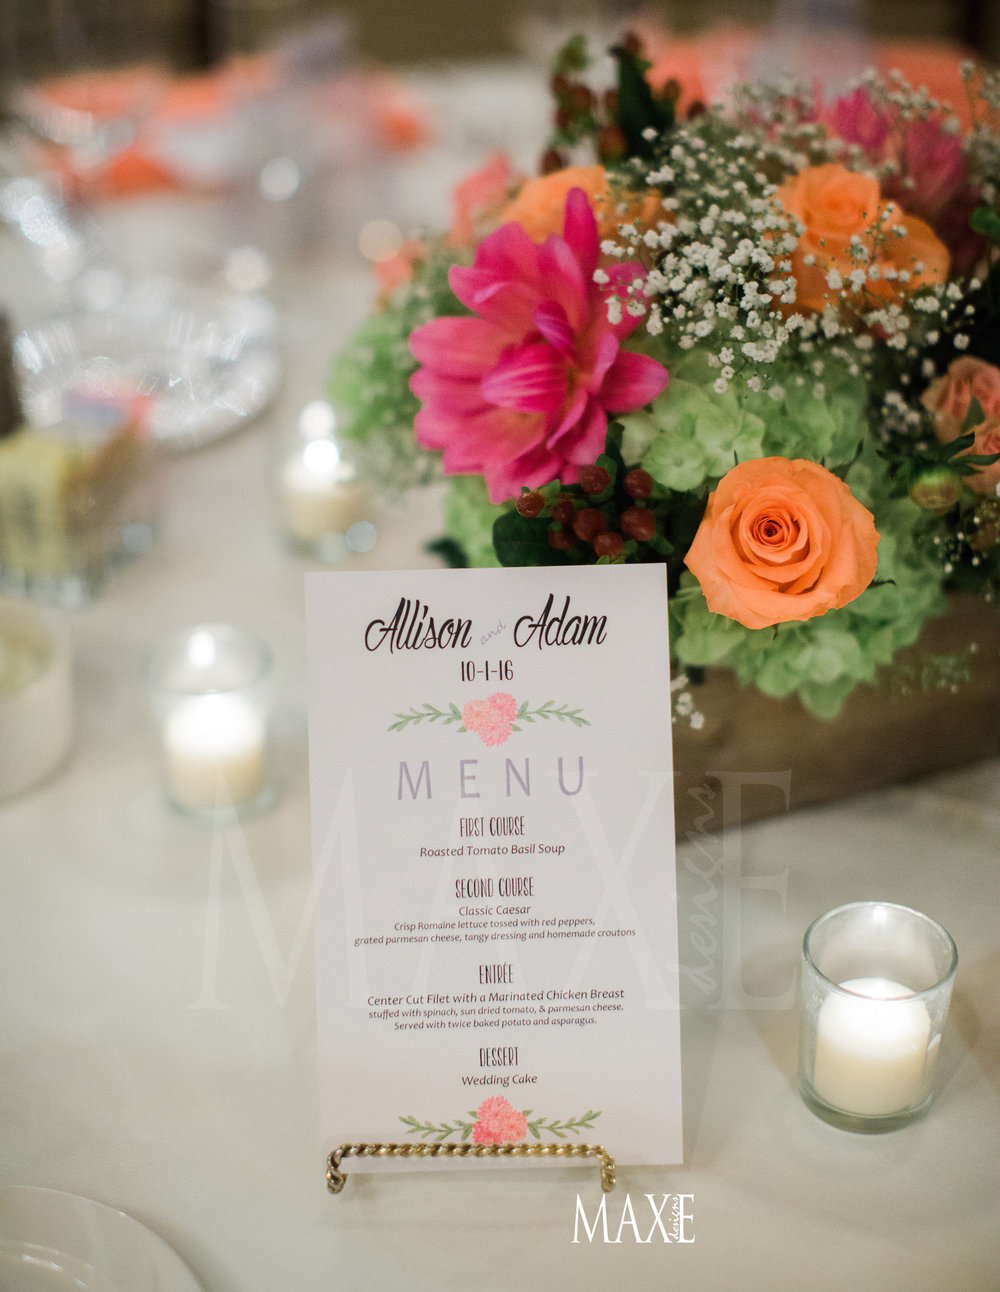 Allison & Adam continued their one-of-a-kind style with their dinner menu's presented as another touch to their table décor.